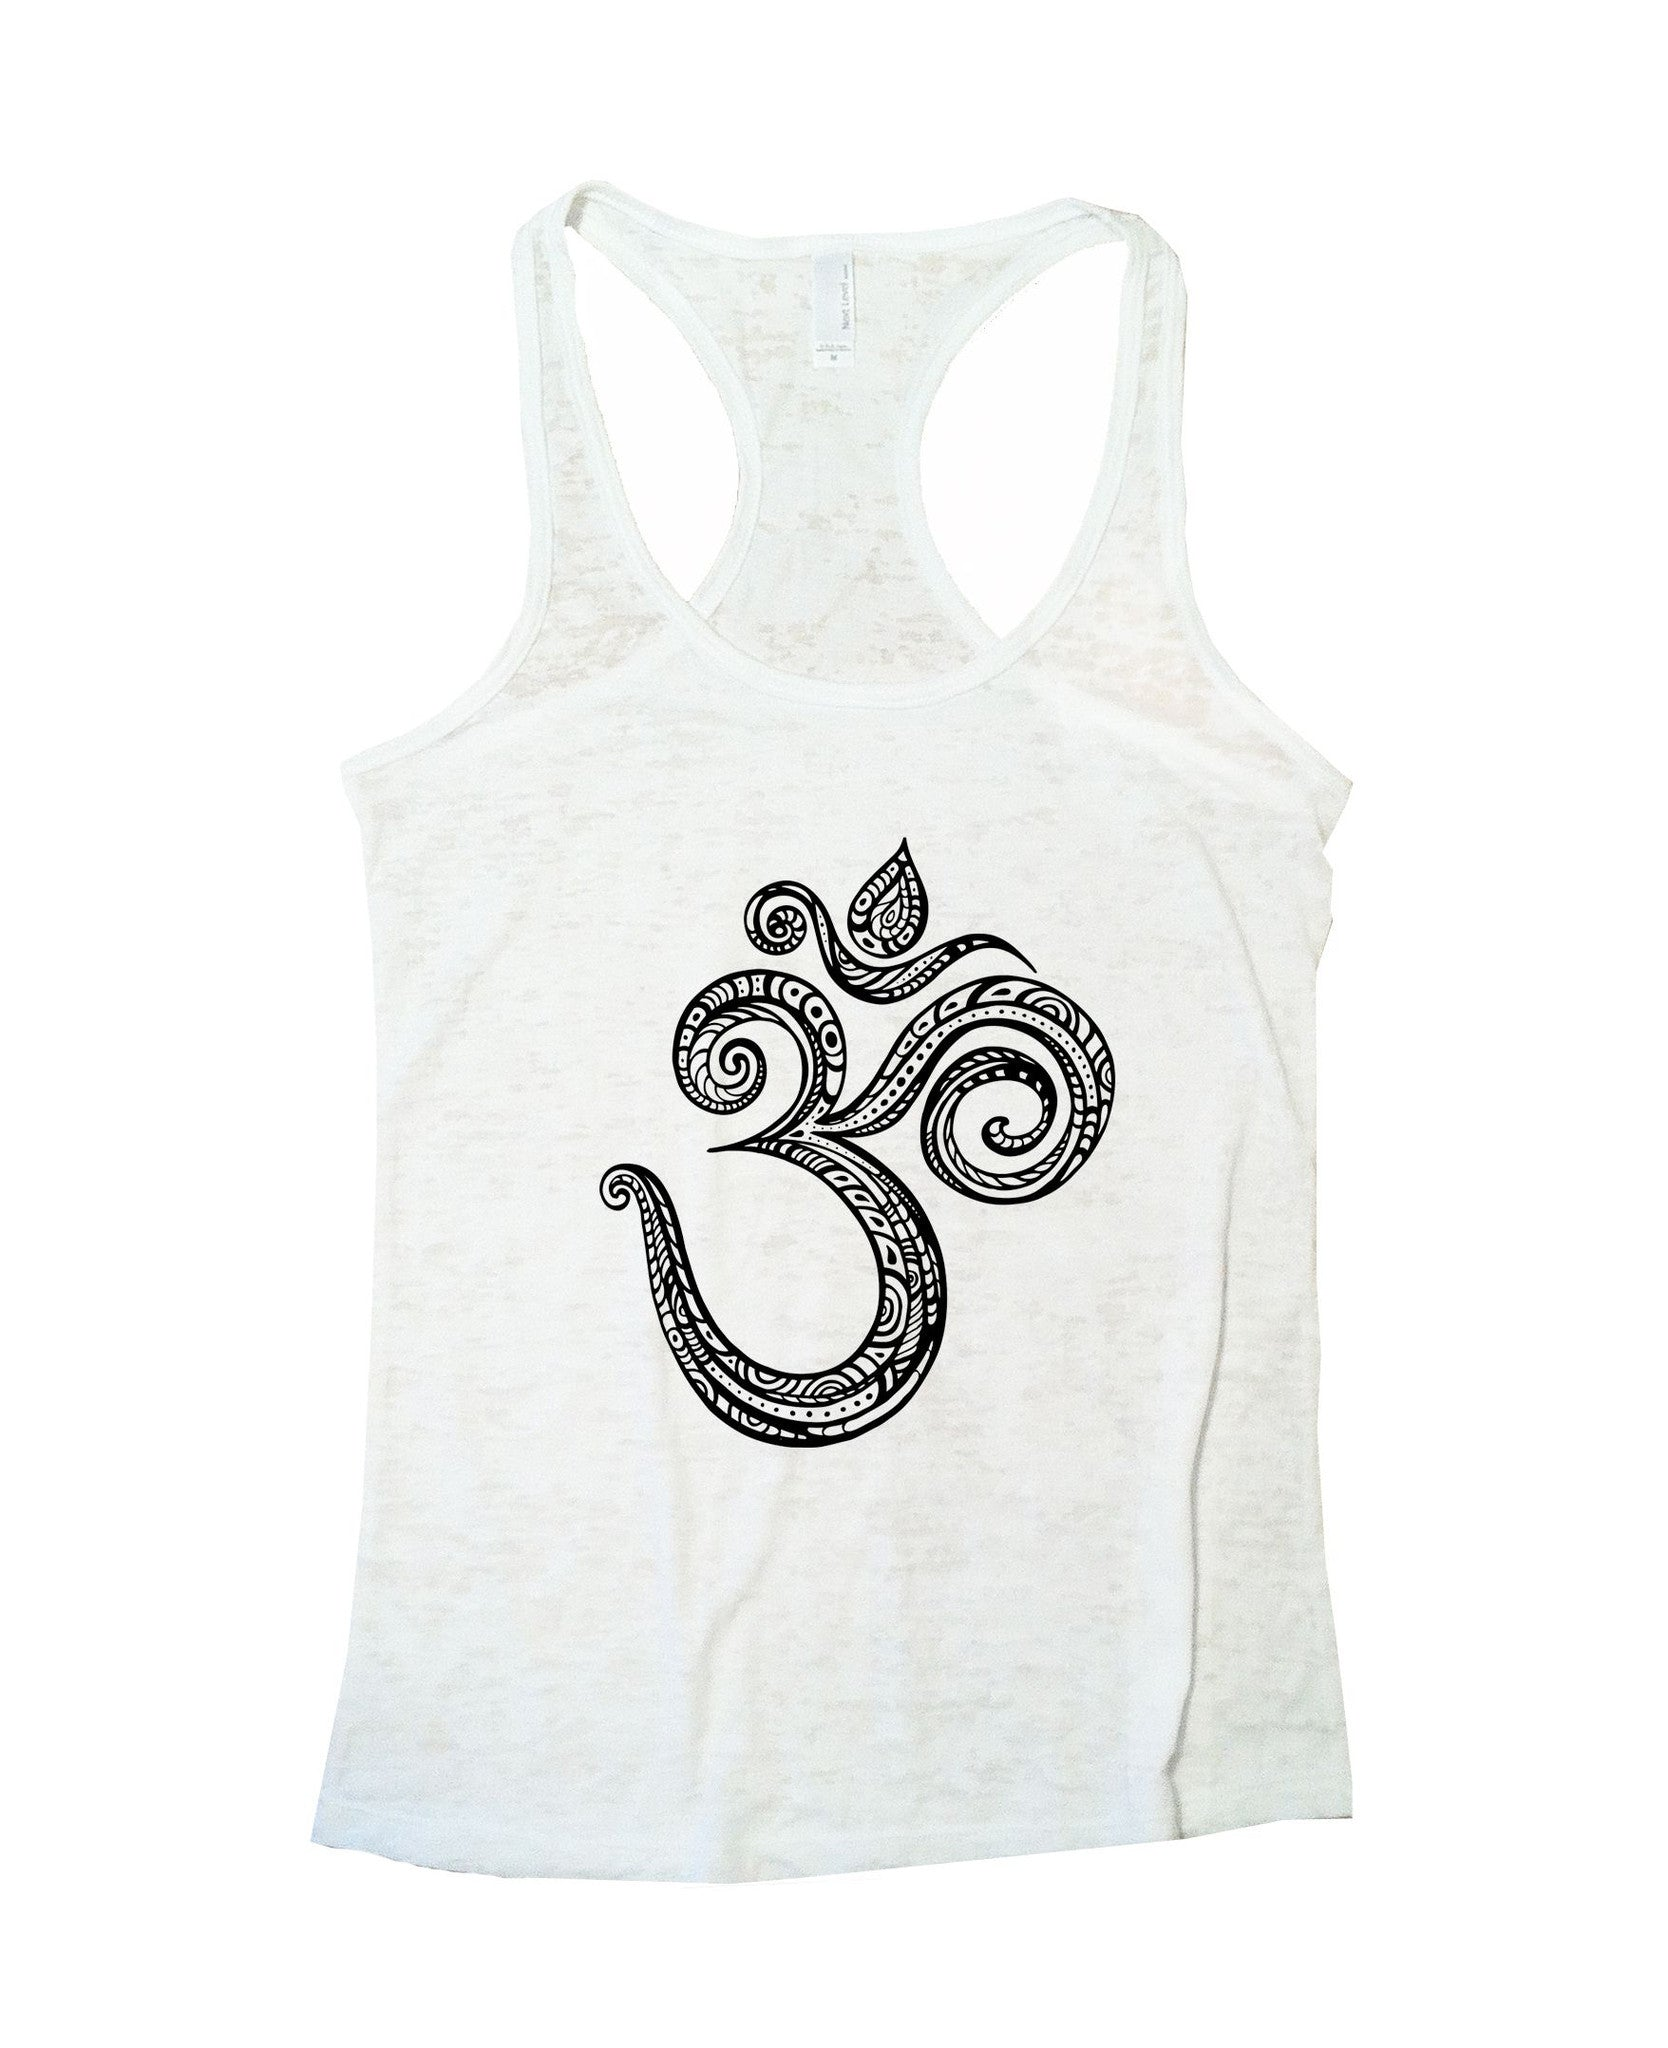 Ohm Burnout Tank Top By BurnoutTankTops.com - 908 - Funny Shirts Tank Tops Burnouts and Triblends  - 6